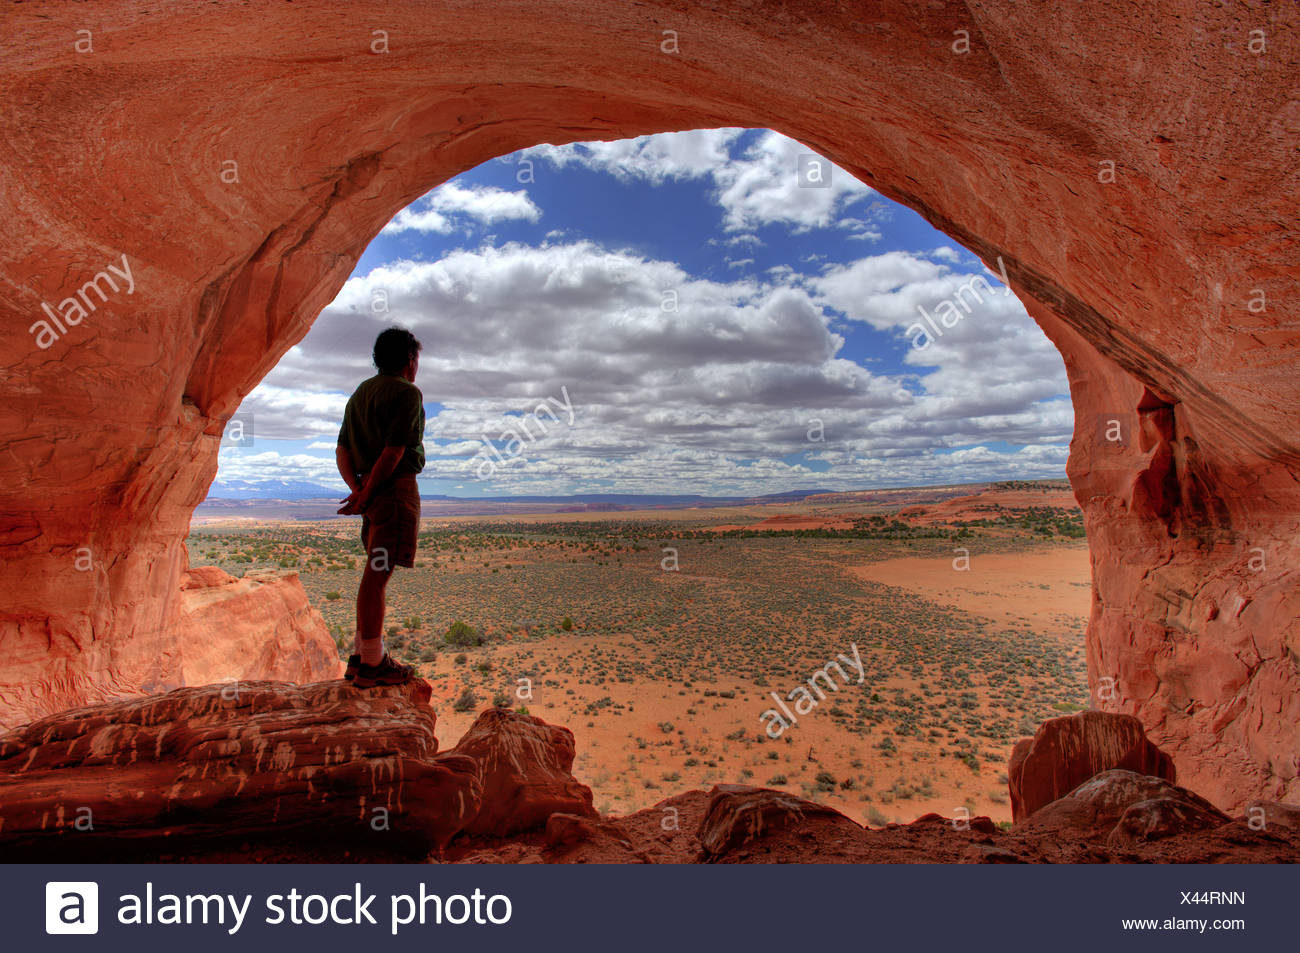 Man enjoys the view at Looking Glass Rock near Moab, Utah, USA - Stock Image